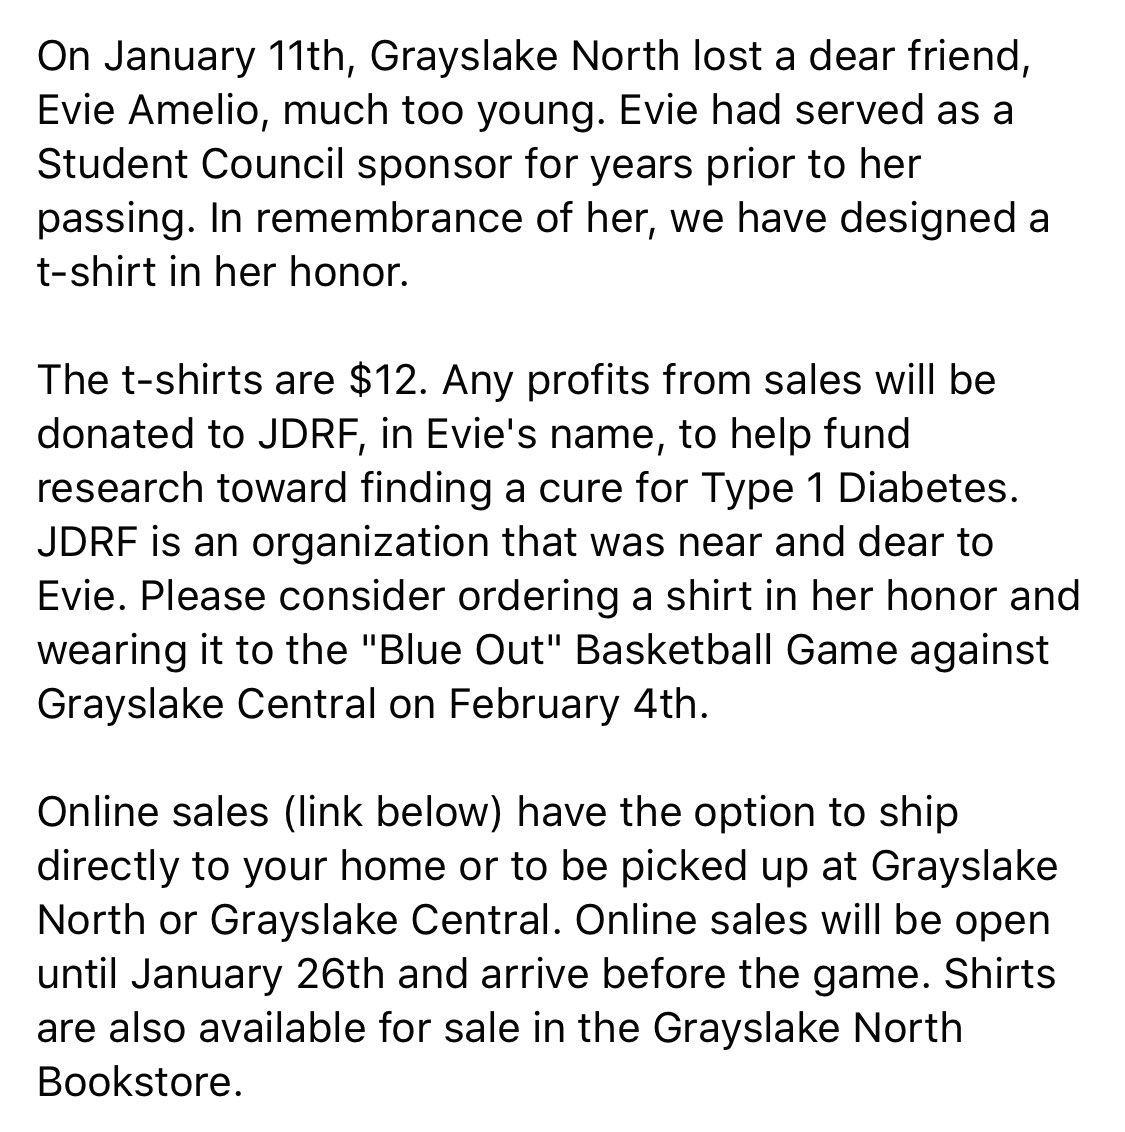 test Twitter Media - Please consider purchasing a shirt in memory of Evie Amelio. All proceeds will be donated to JDRF in her honor. https://t.co/CEkBY0Fh5k  #JDRF #blueout #diabetes #research #RIP https://t.co/erMHNEZG8a